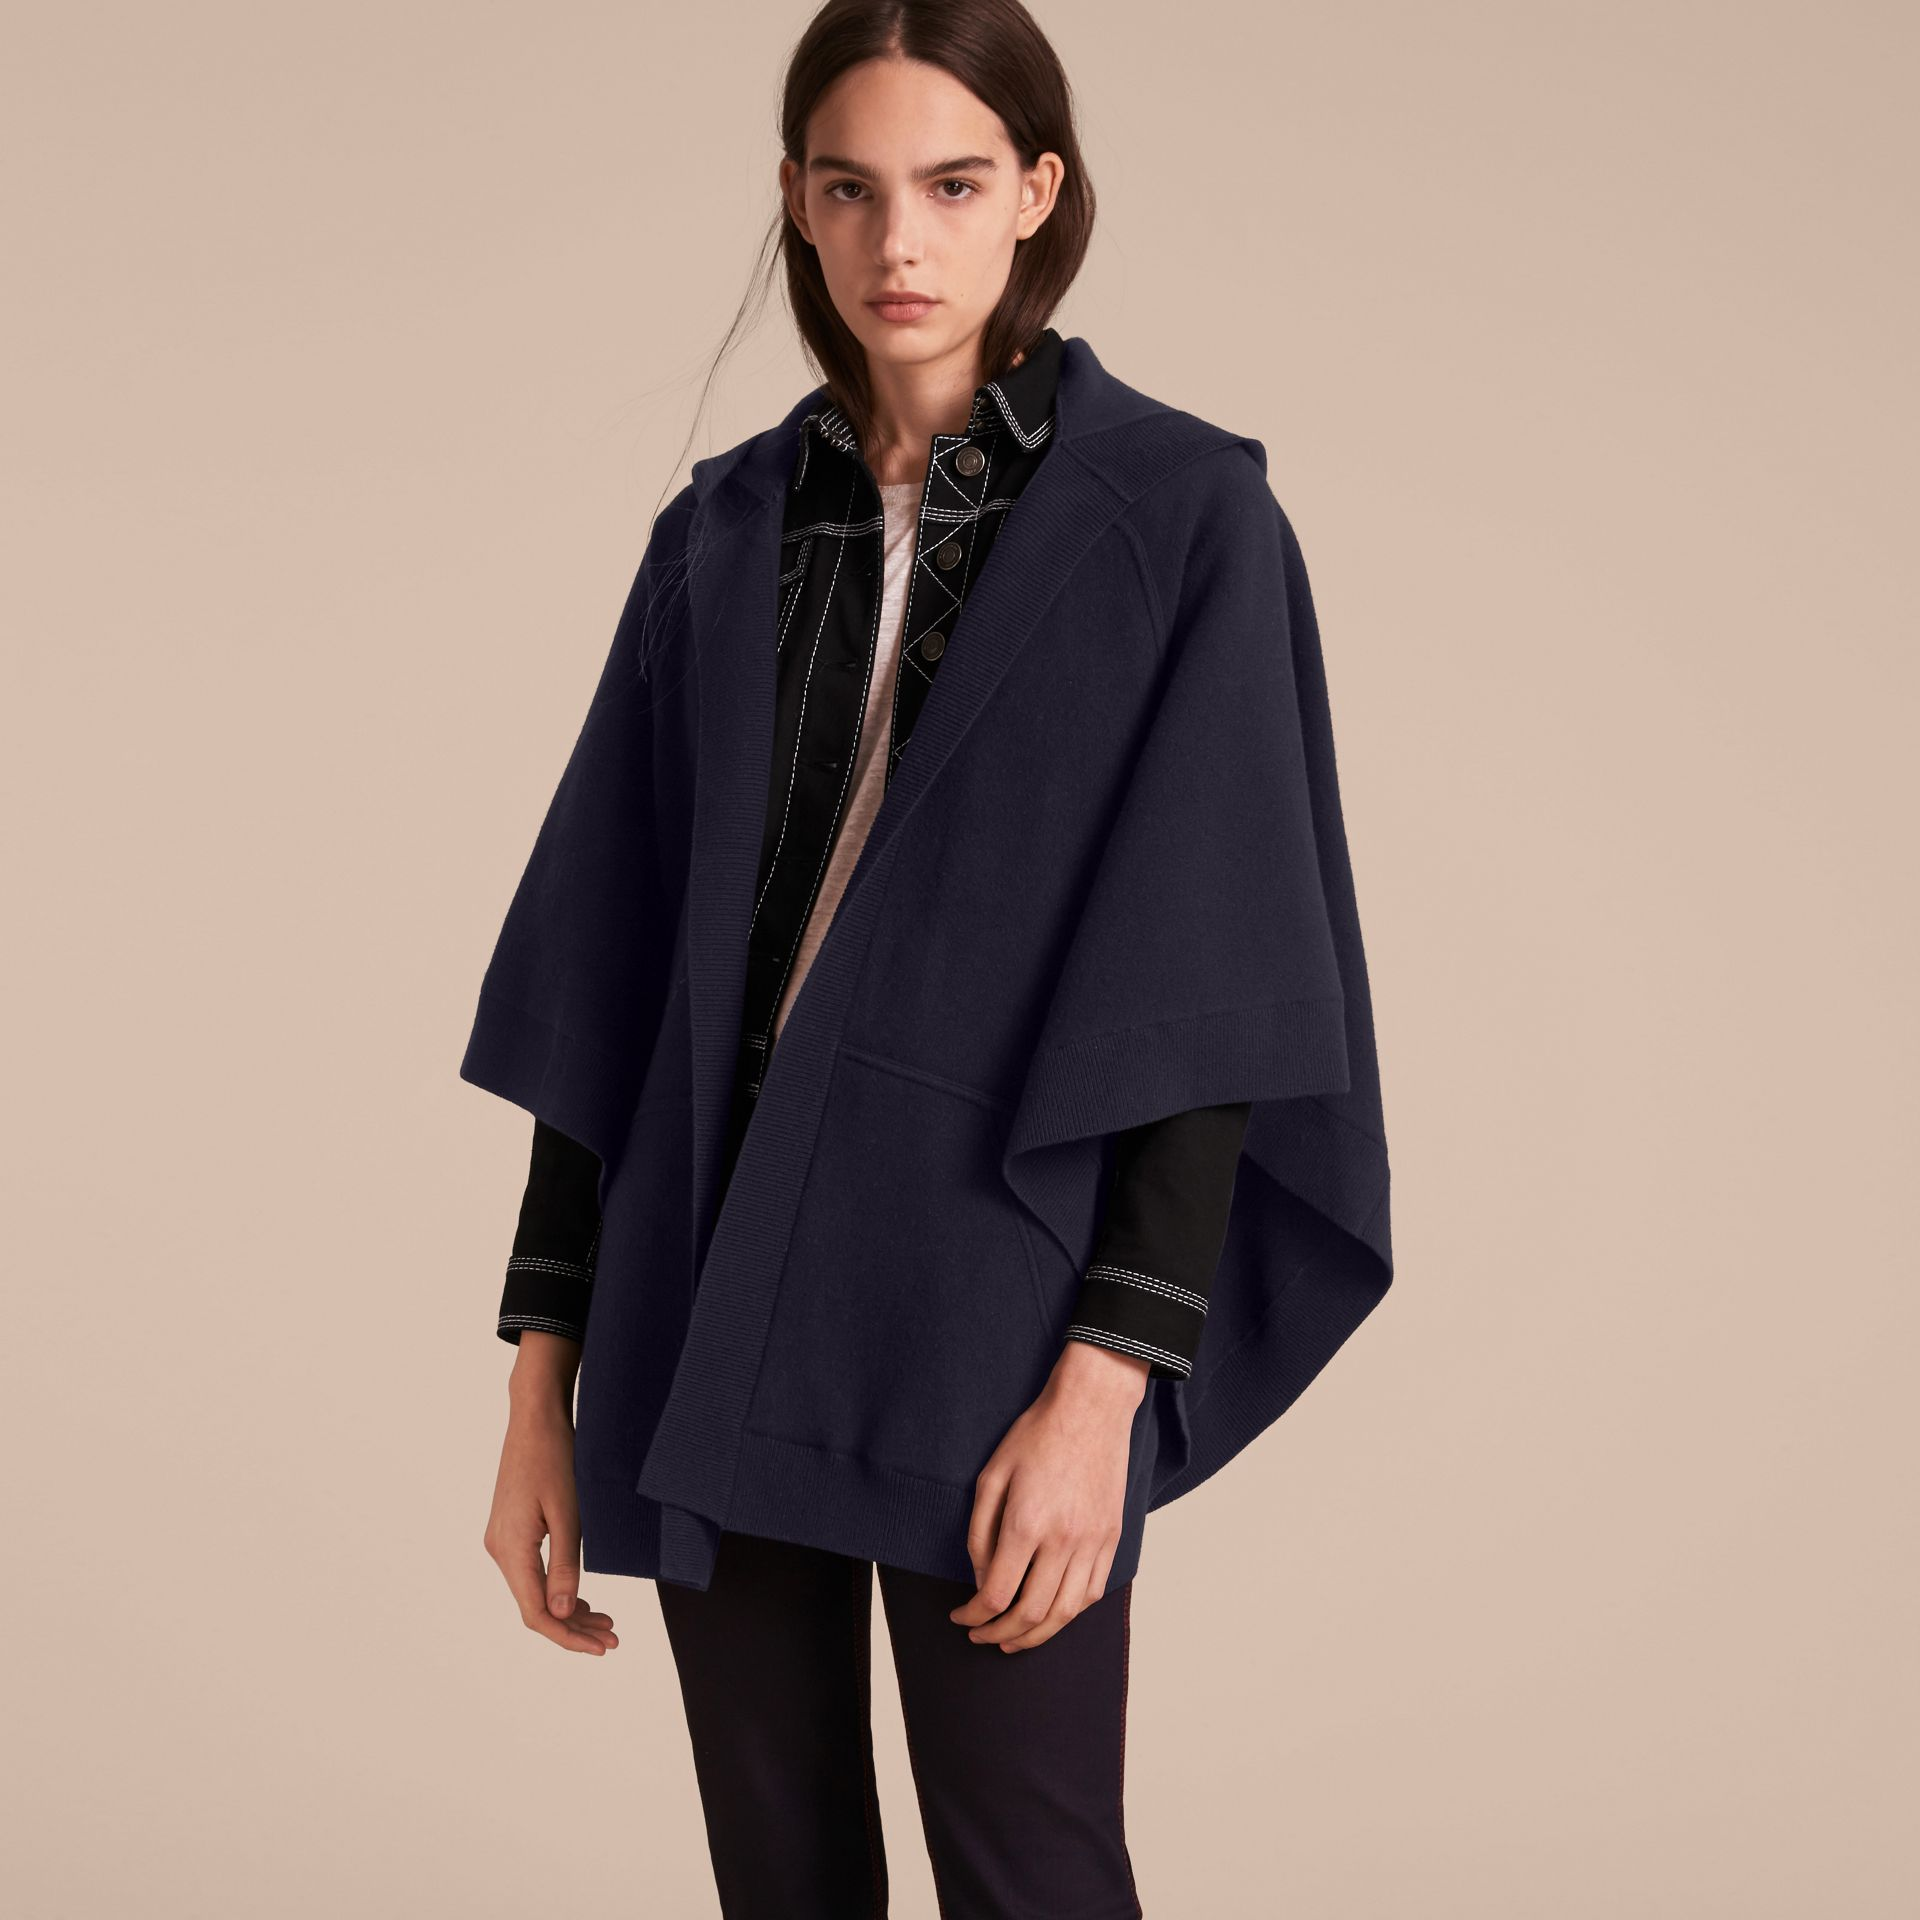 Wool Cashmere Blend Hooded Poncho in Navy/black - Women | Burberry - gallery image 6